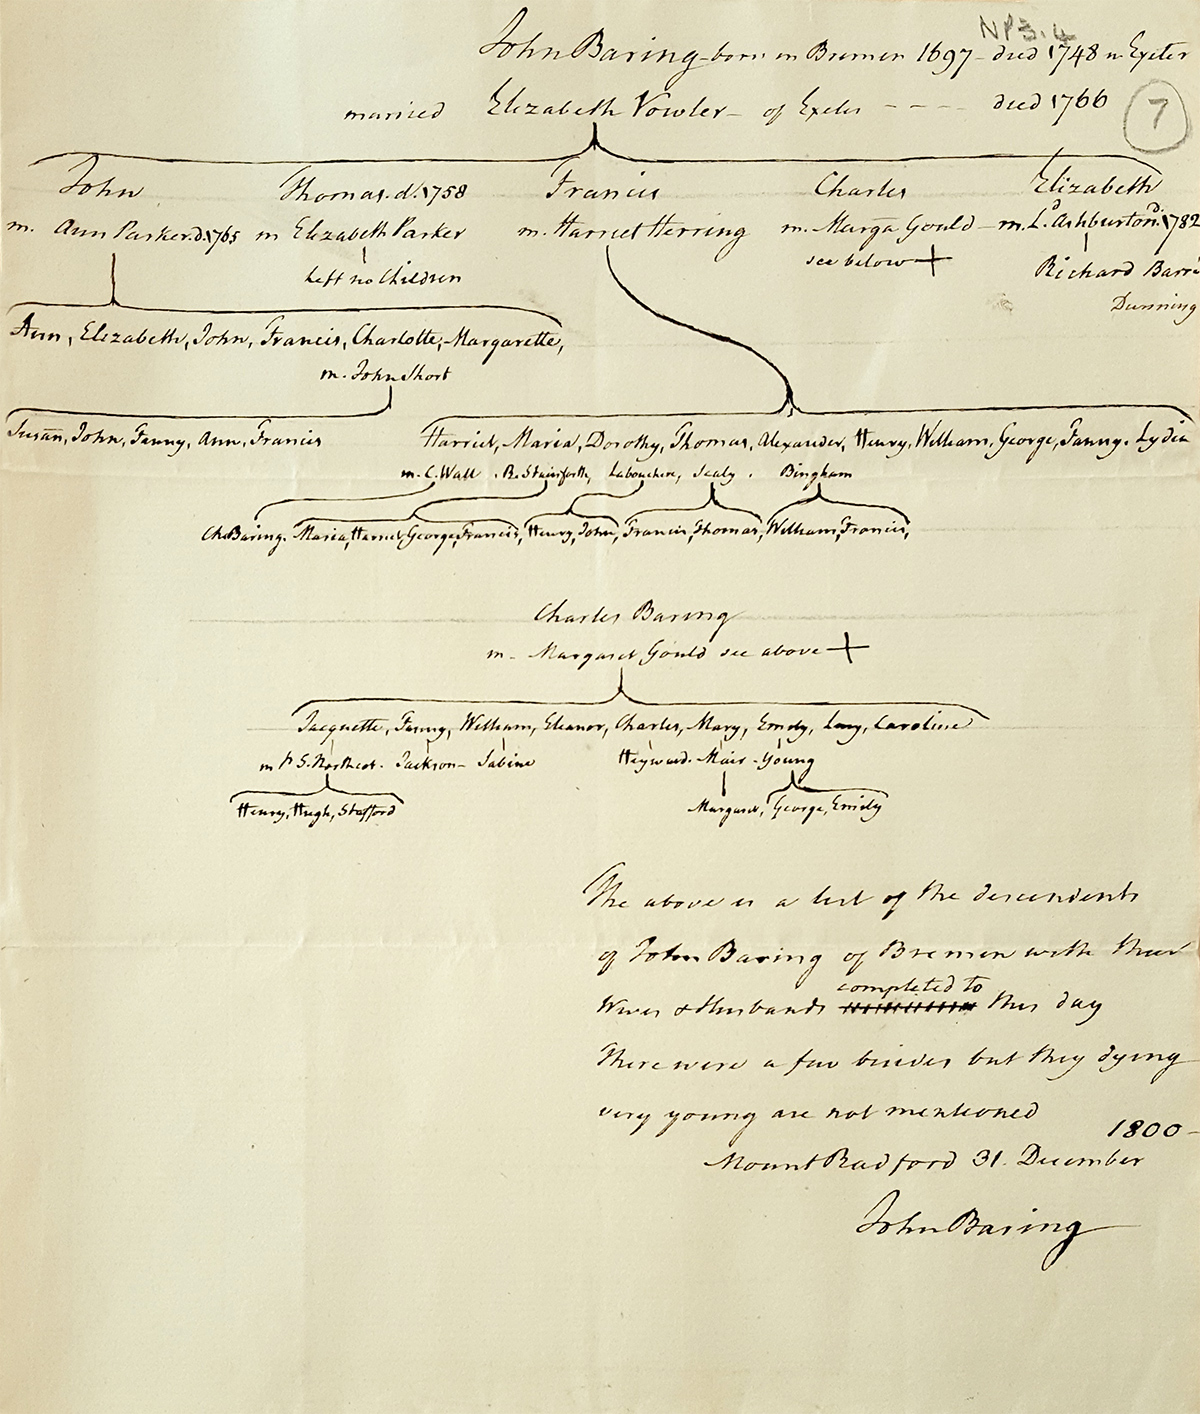 Pen and ink handwritten diagram of the John Baring family tree